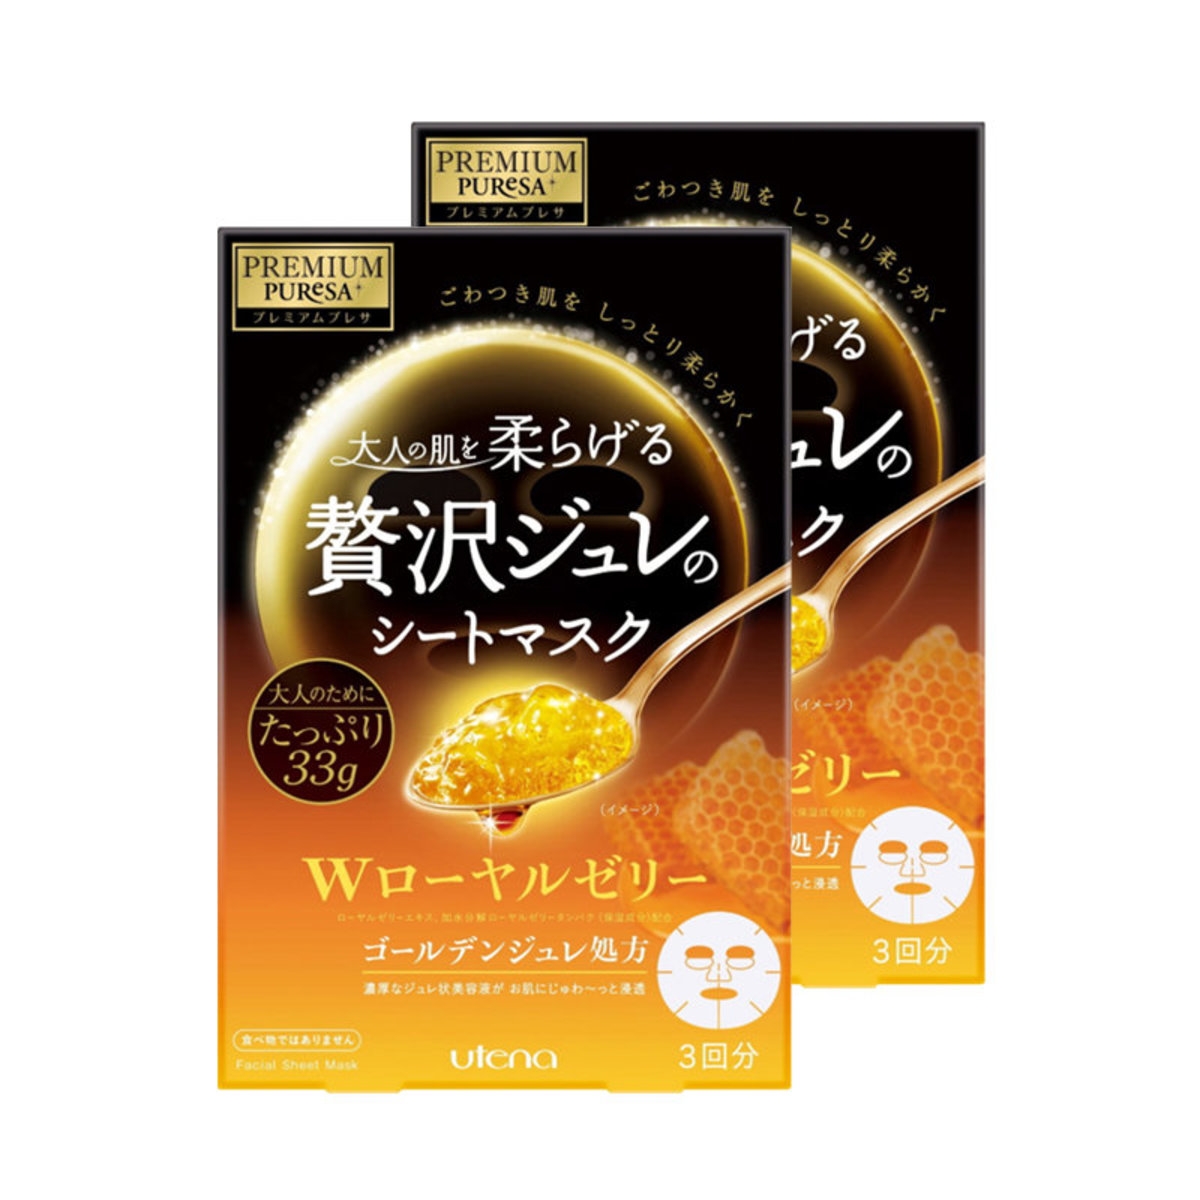 Premium Puresa Golden Jelly Face Mask (3pcs) (3piece) (Yellow) x2